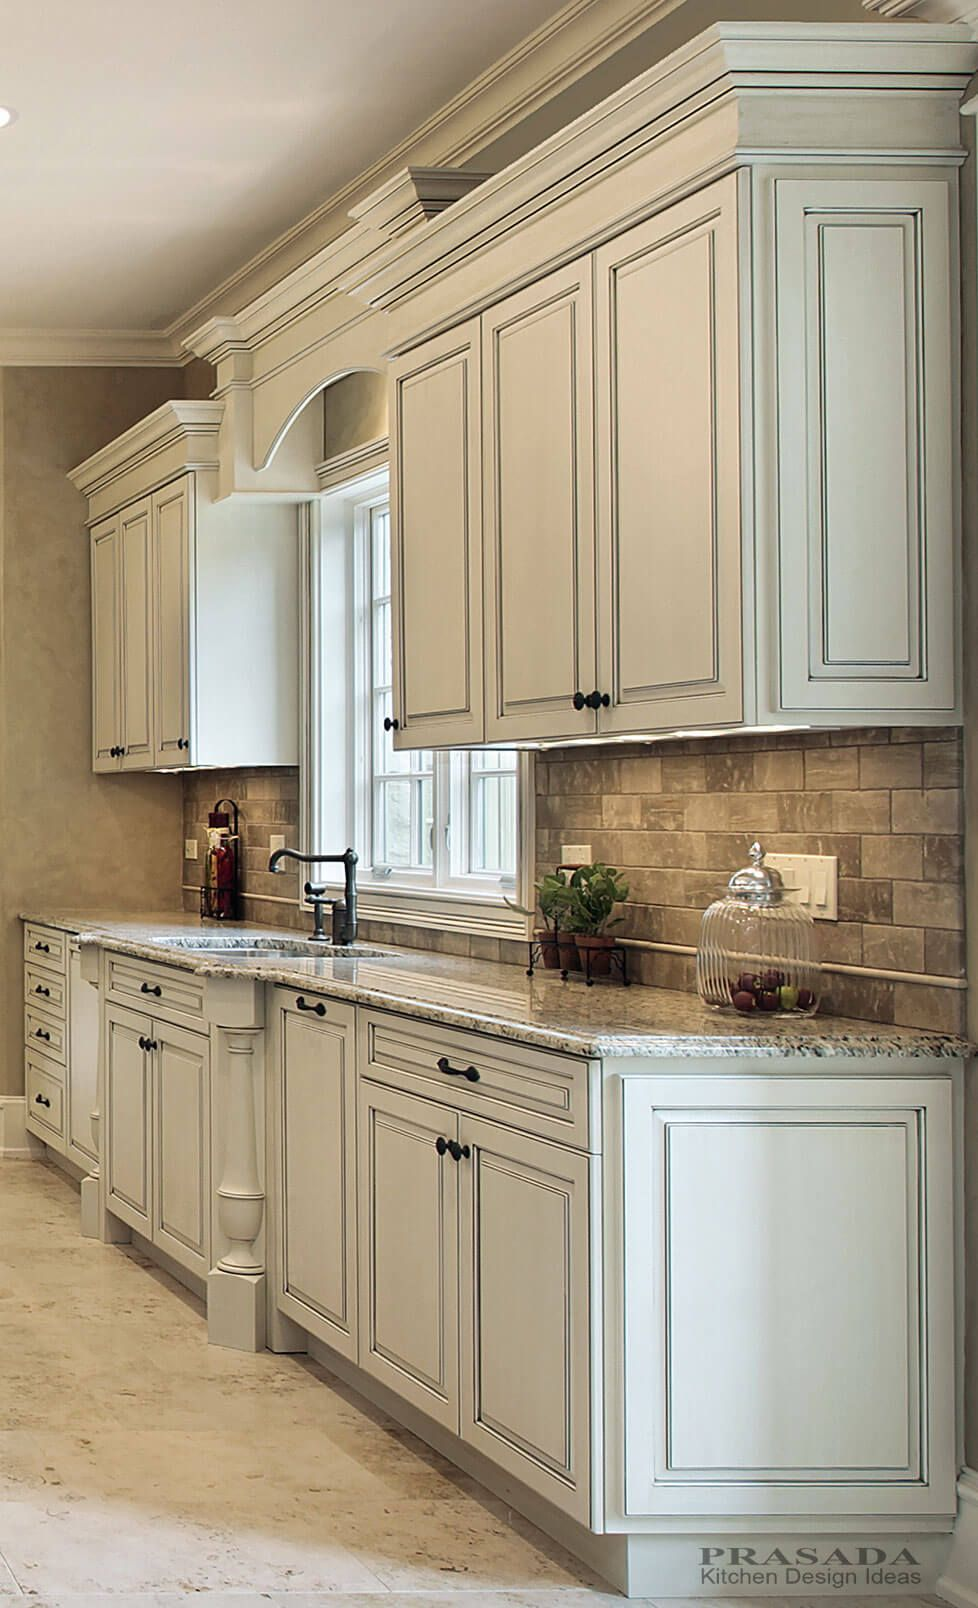 27 Cabinets For The Rustic Kitchen Of Your Dreams Antique White Kitchen Antique White Kitchen Cabinets Kitchen Design